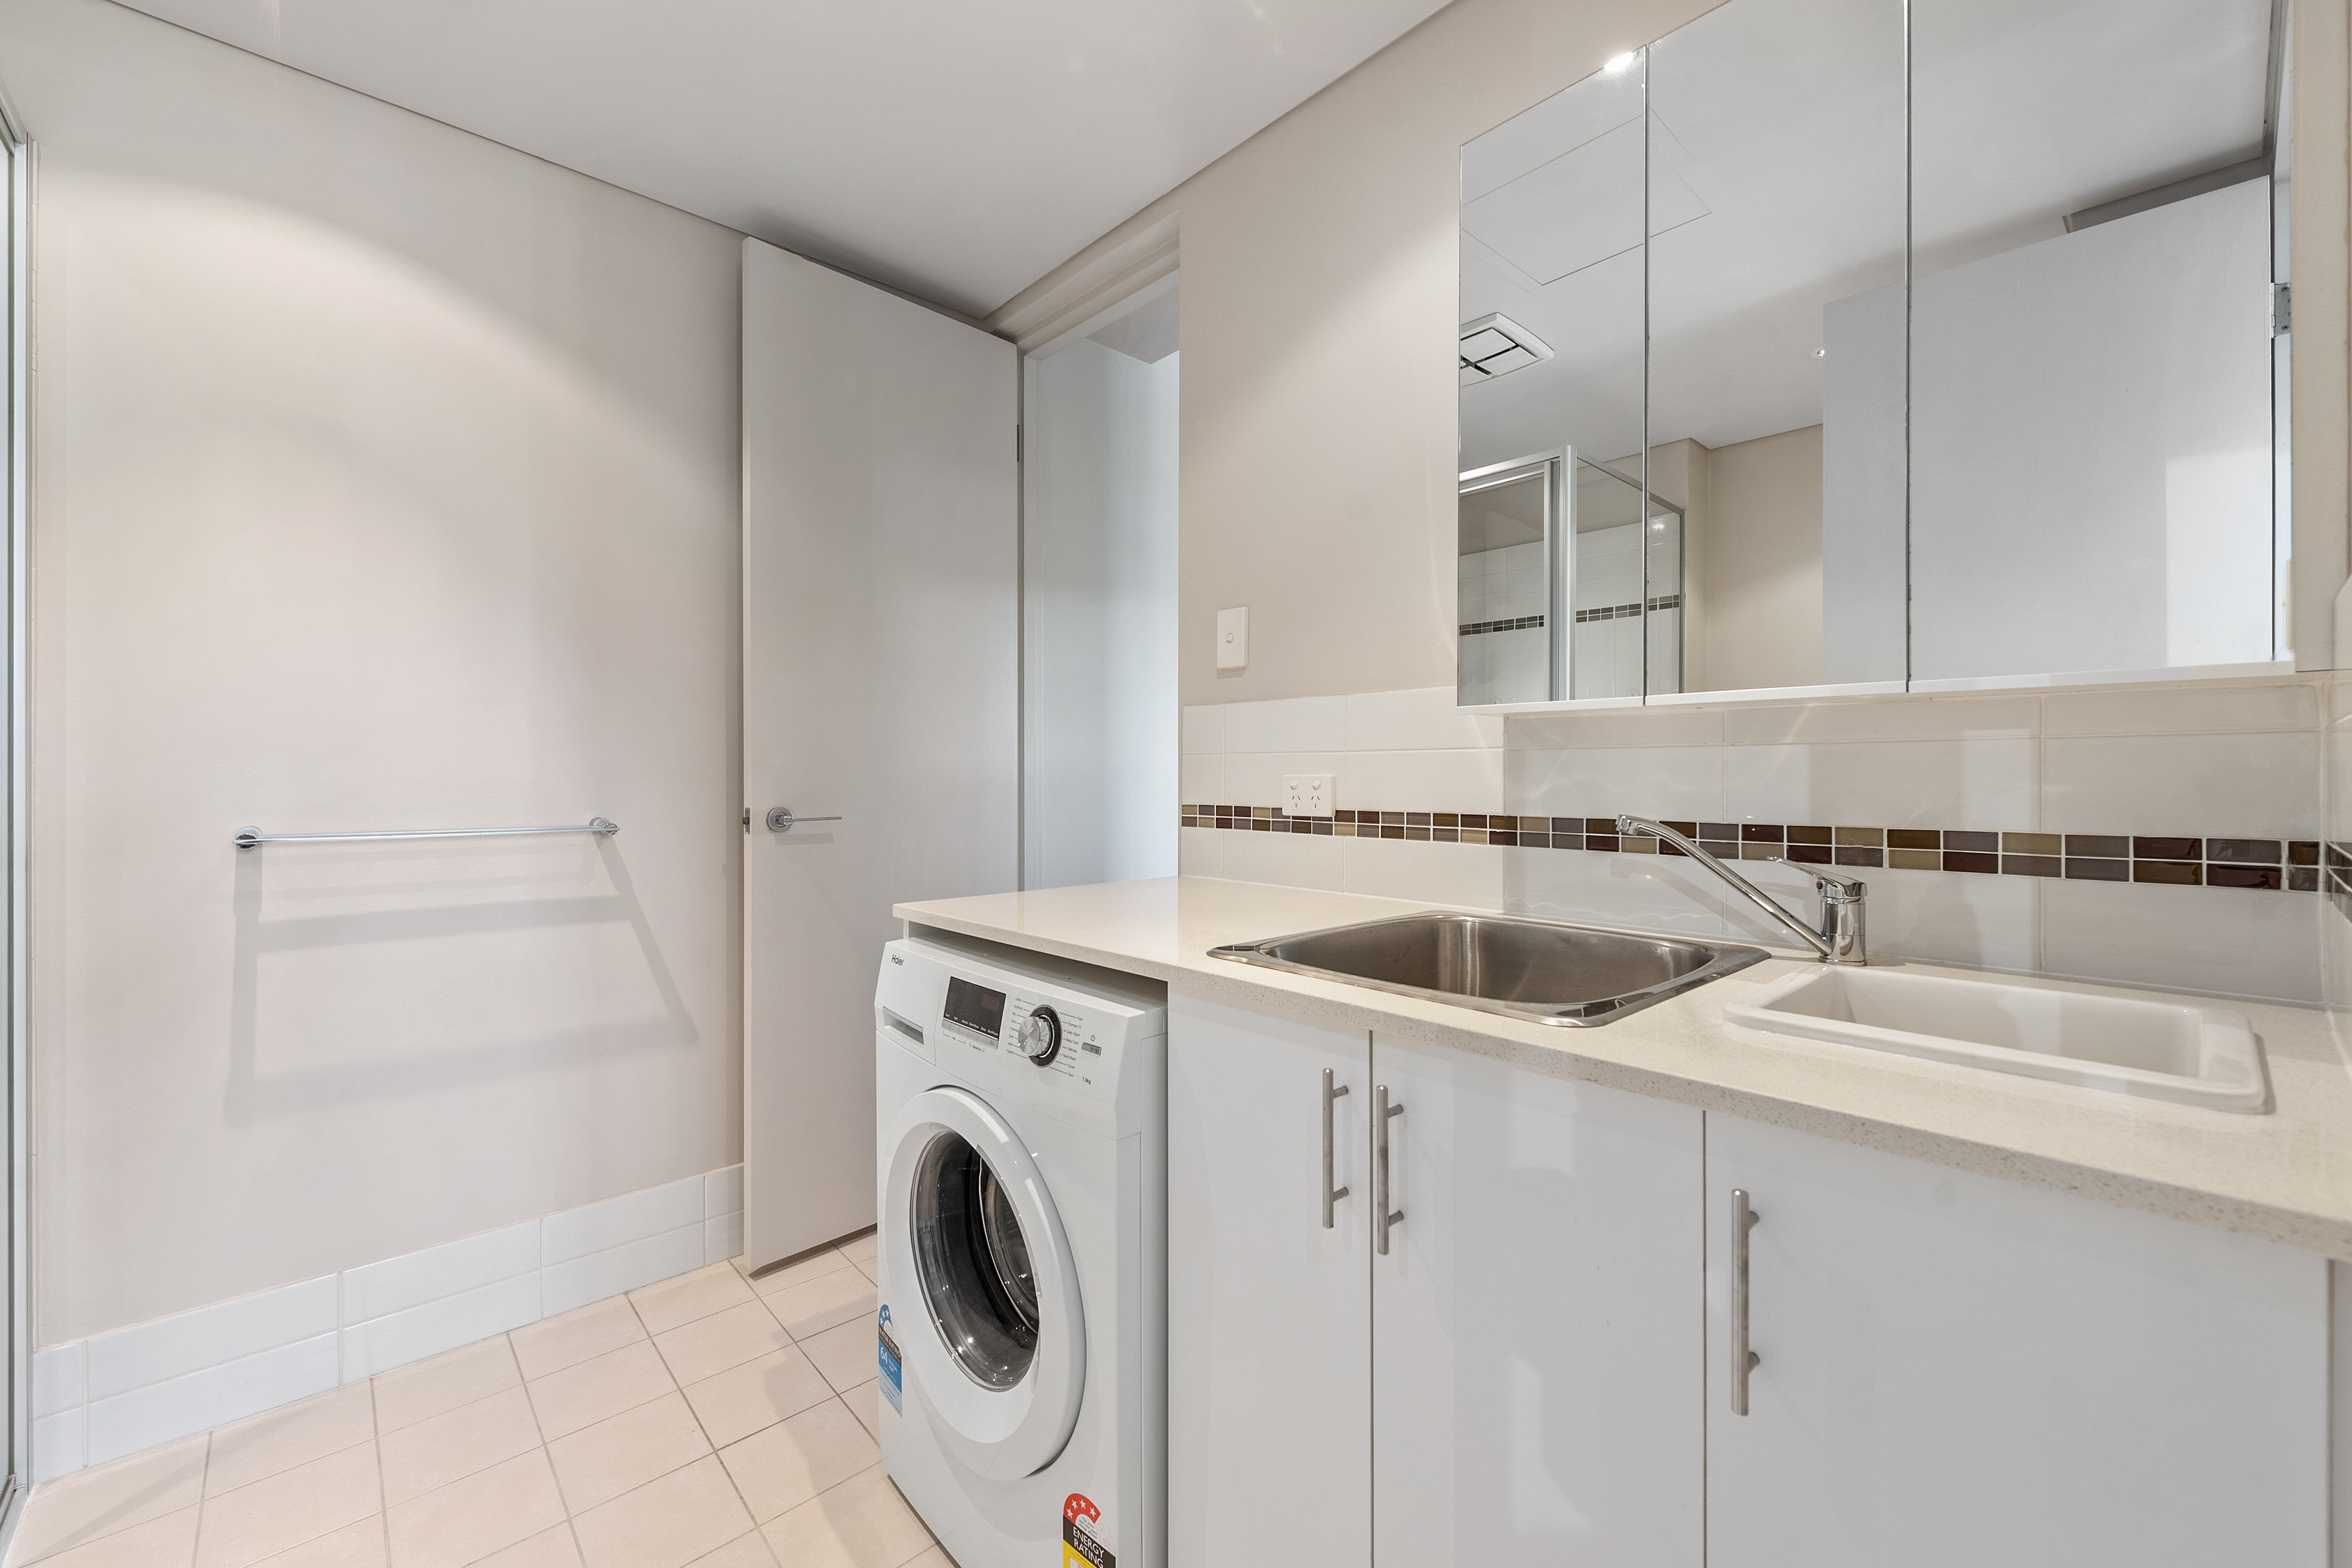 PRINT 202 48 Outram St, West Perth 04